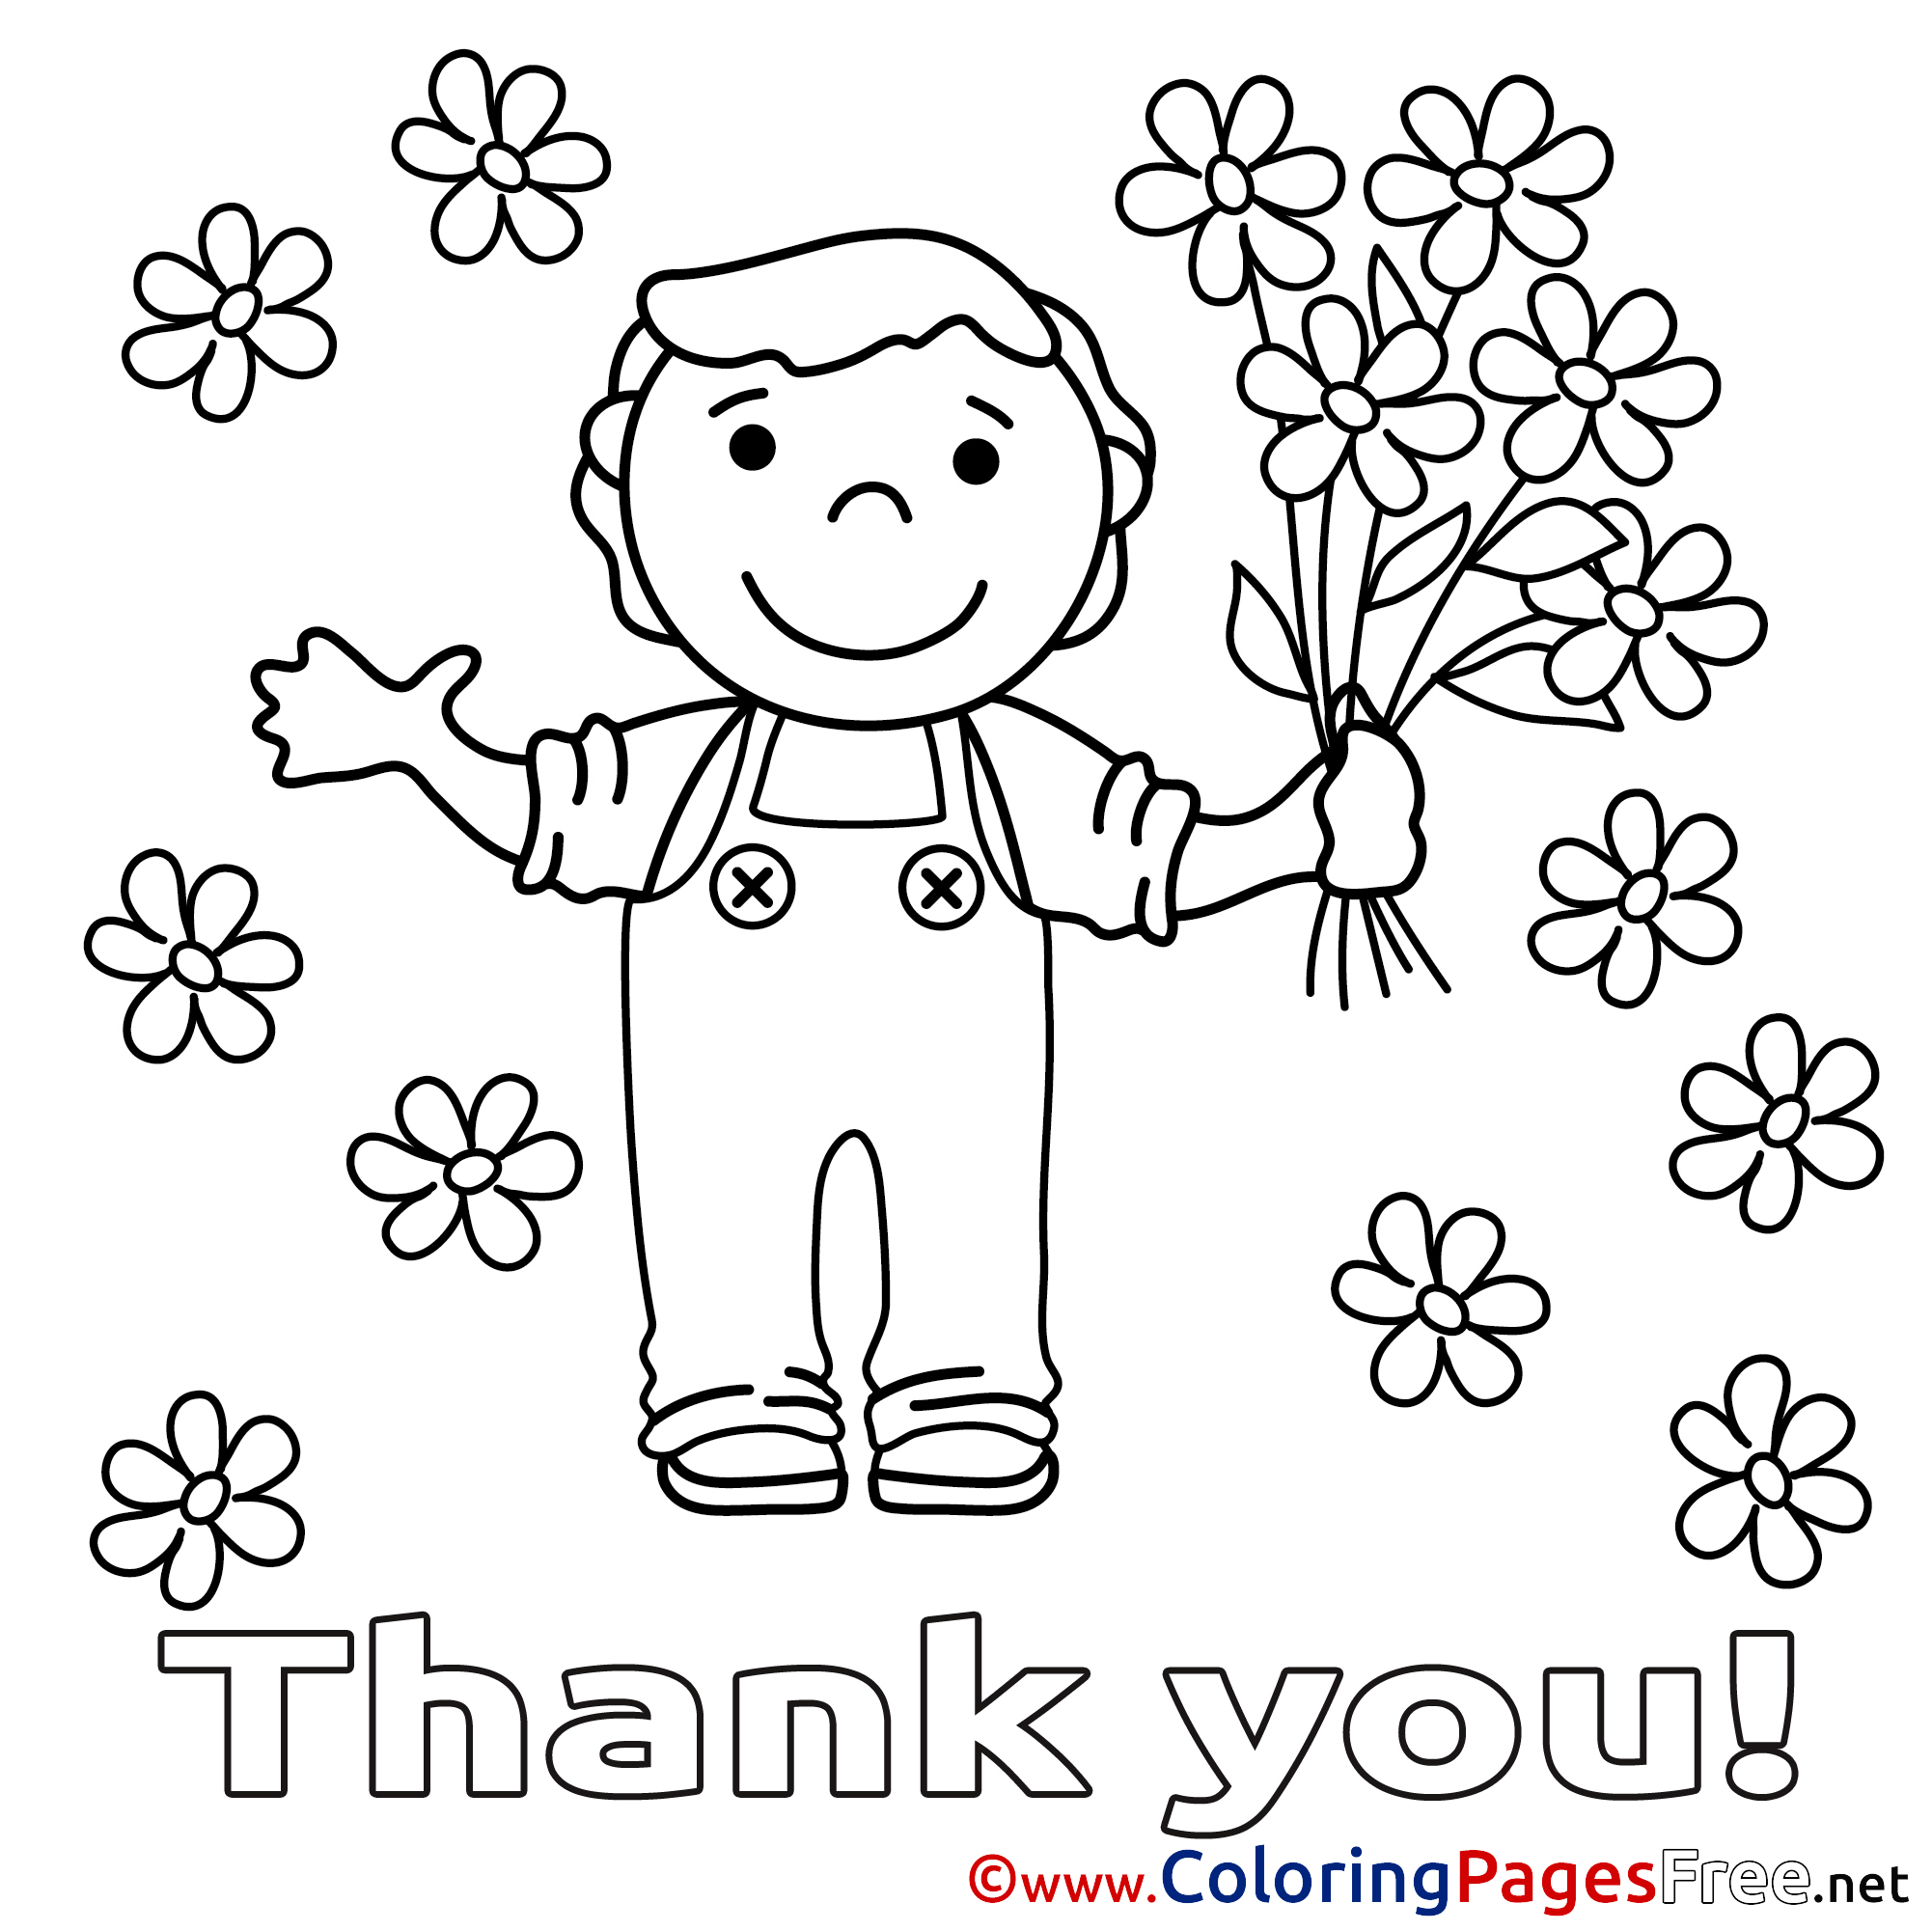 thank you coloring sheets thank you coloring pages free at getdrawings free download coloring you sheets thank